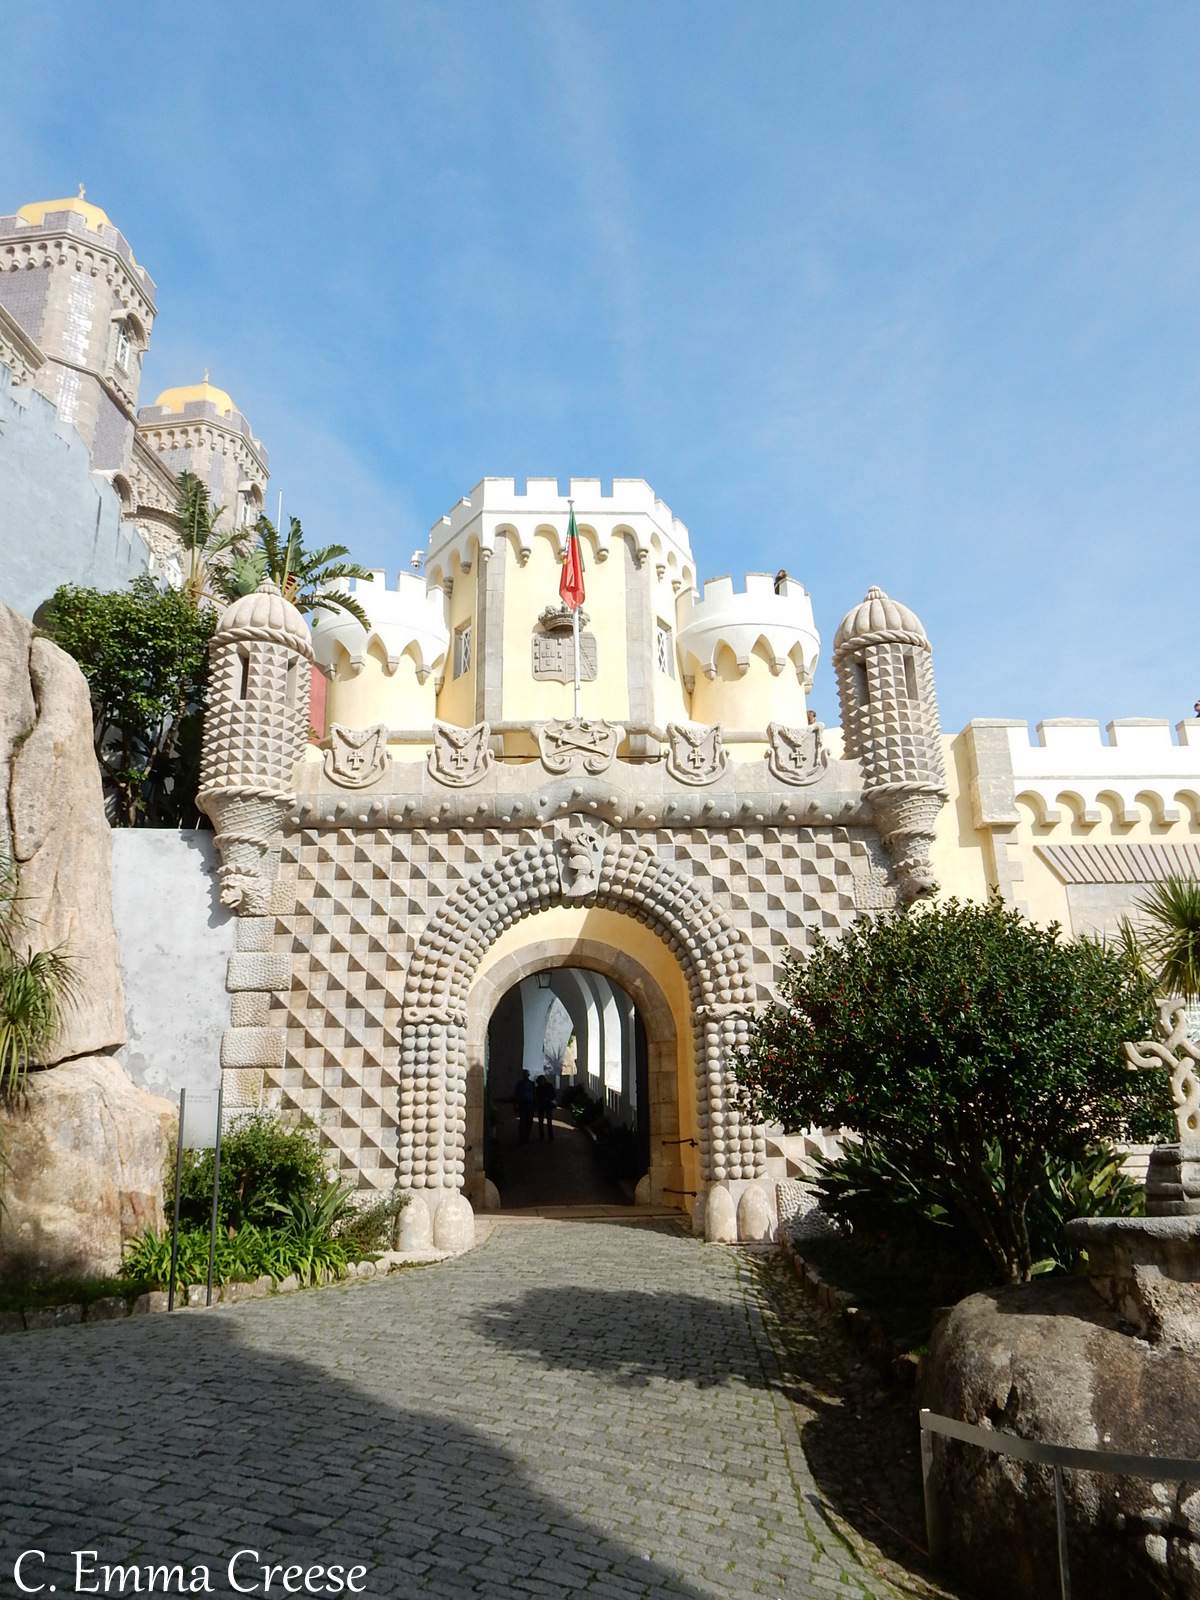 The 10 best castles in the world Adventures of a London Kiwi